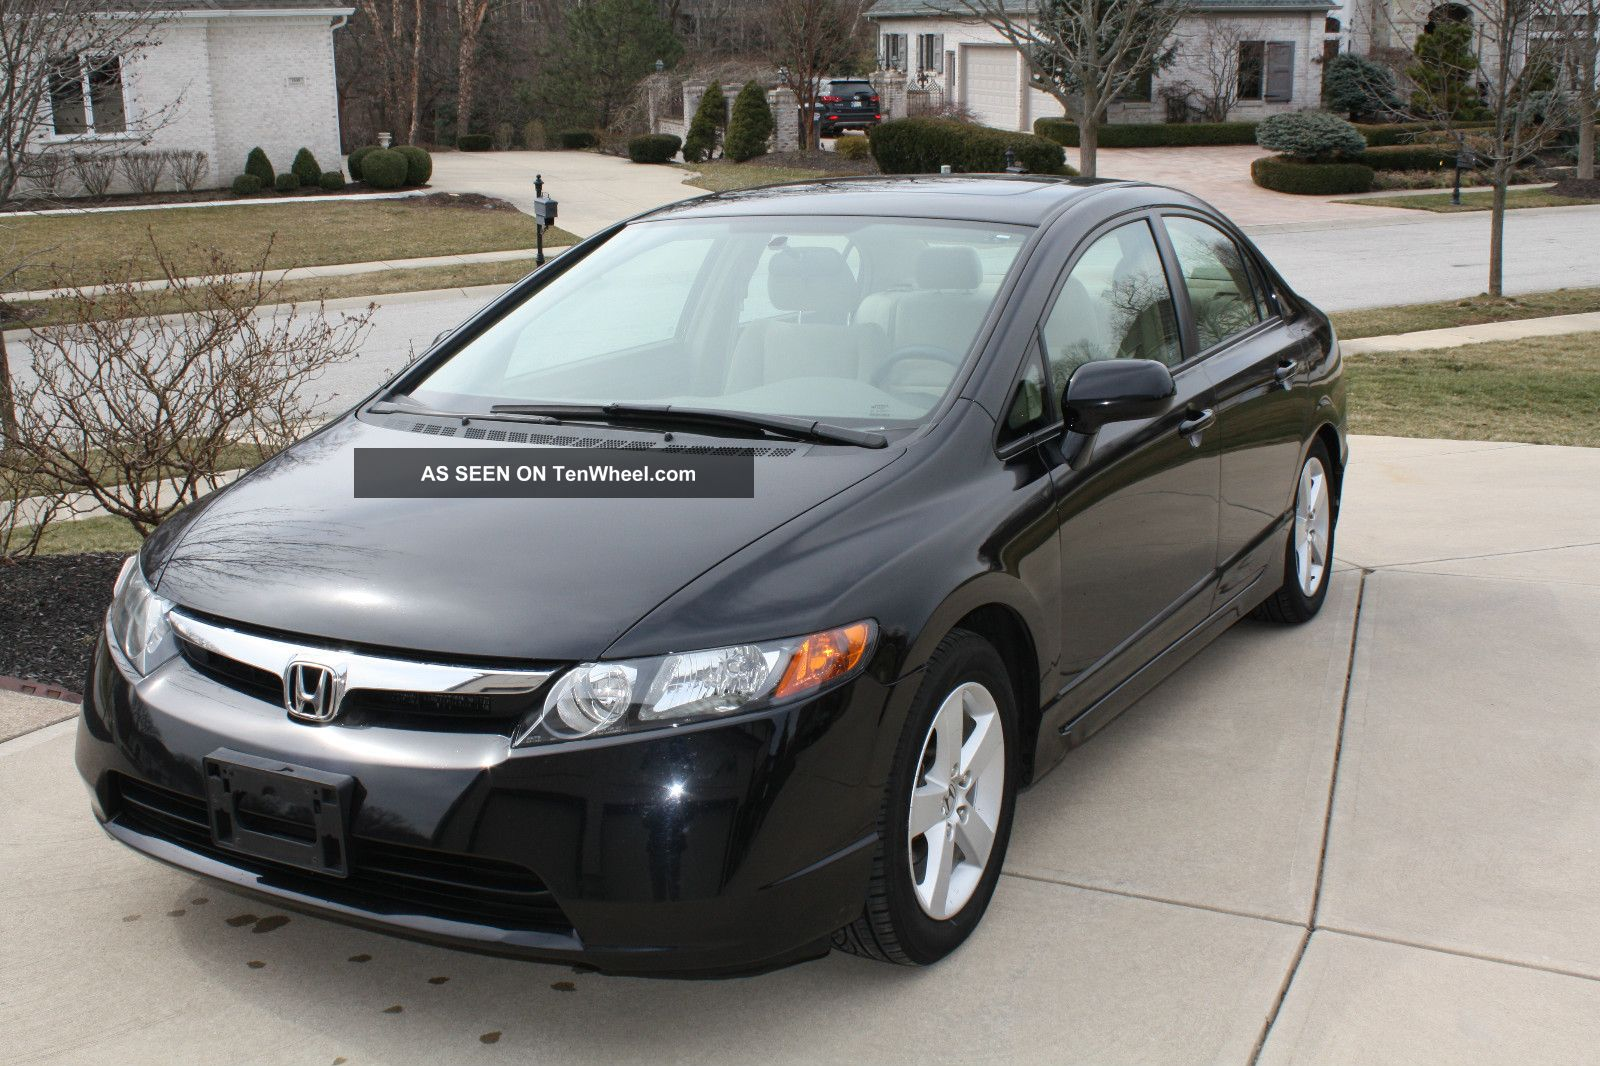 2006 honda civic ex sedan 40mpg automatic title nonsmoker. Black Bedroom Furniture Sets. Home Design Ideas